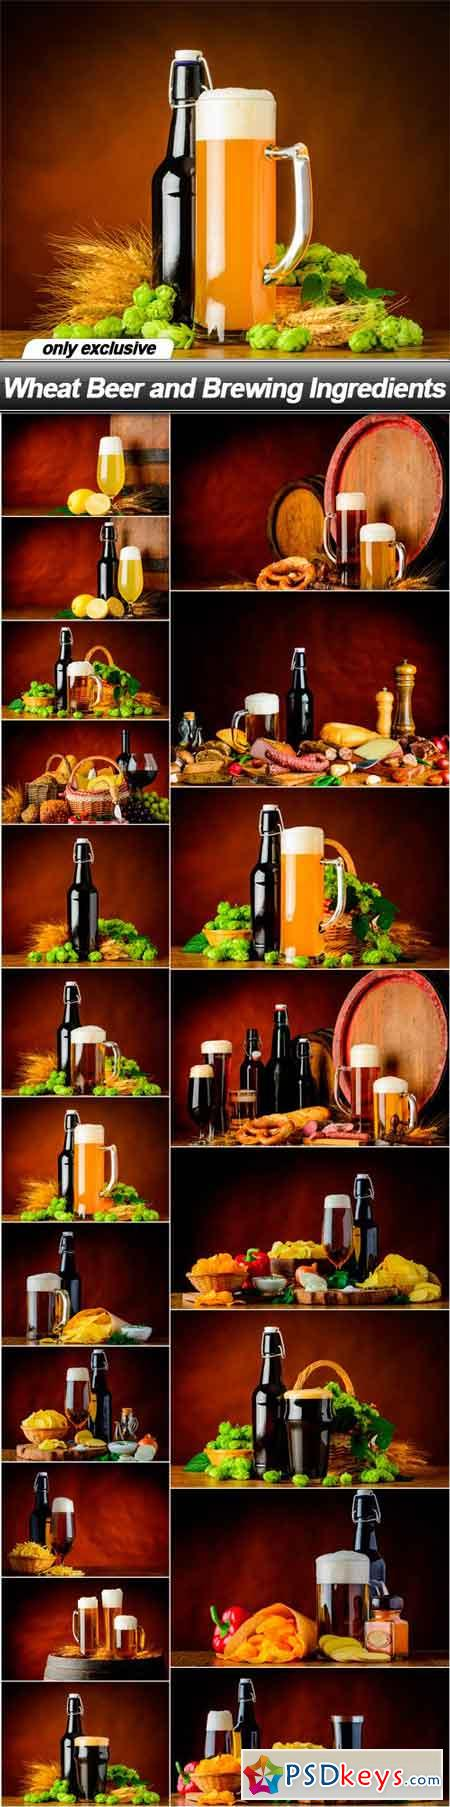 Wheat Beer and Brewing Ingredients - 20 UHQ JPEG